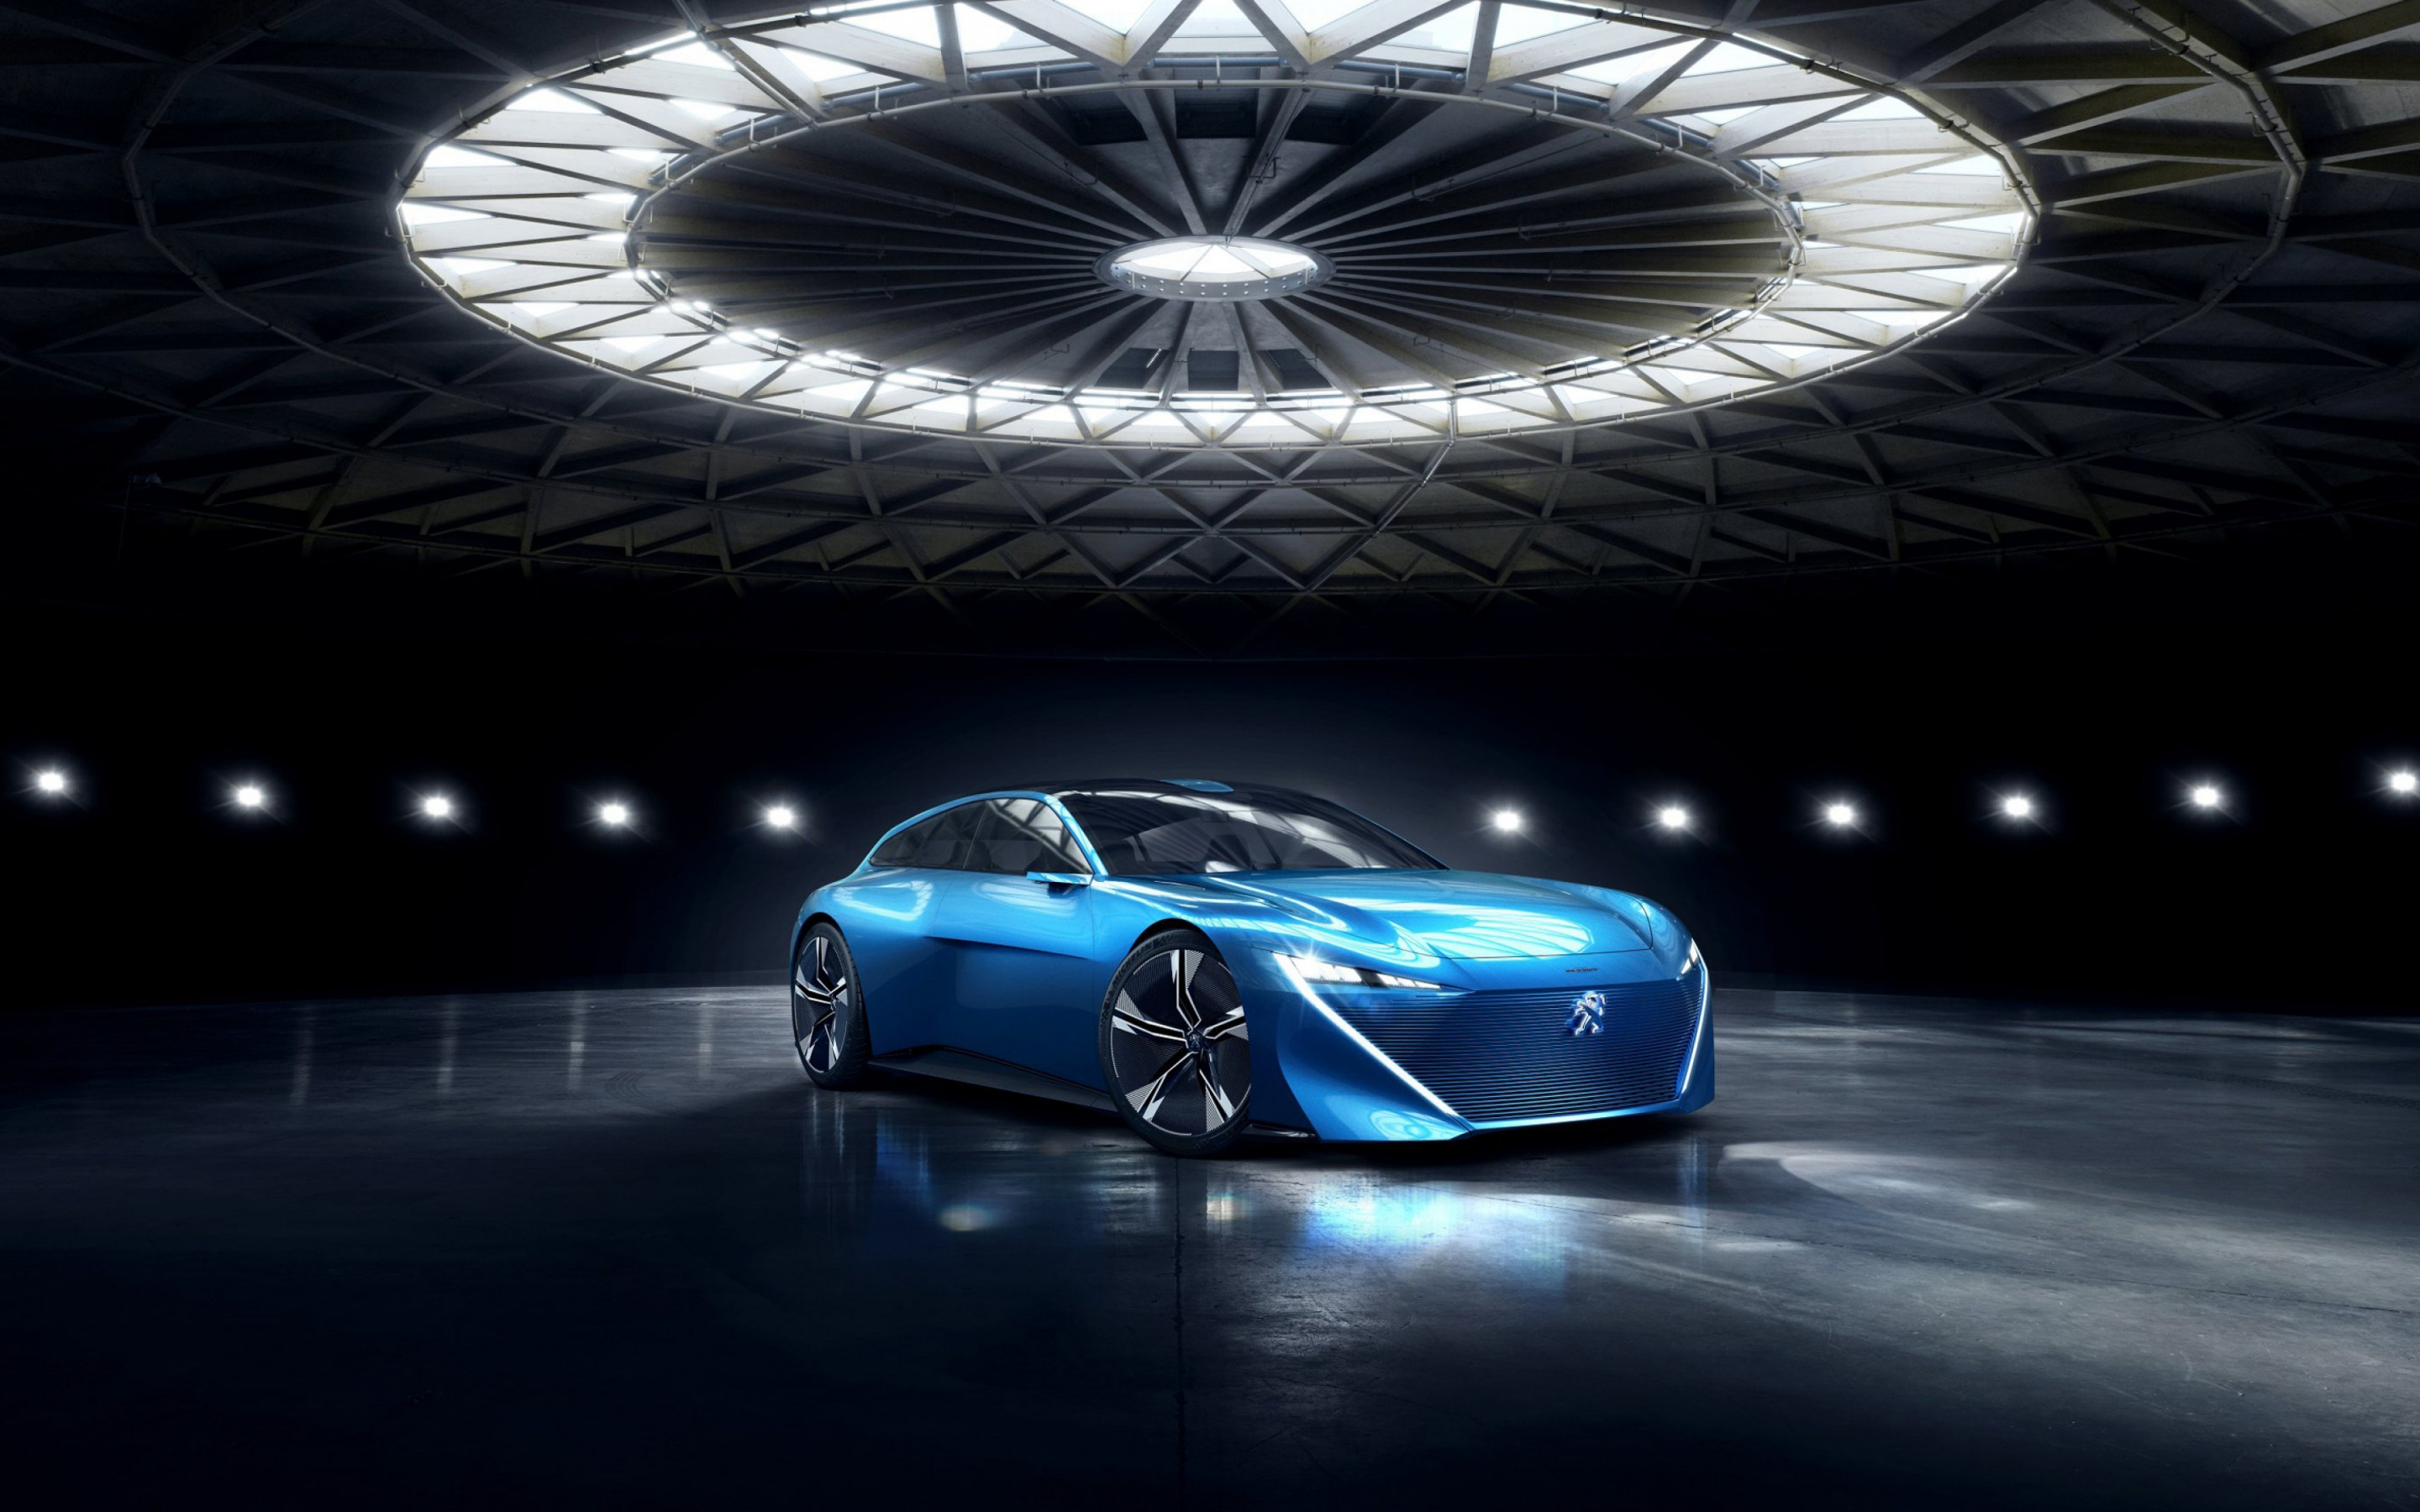 Peugeot Instinct | 2880x1800 wallpaper